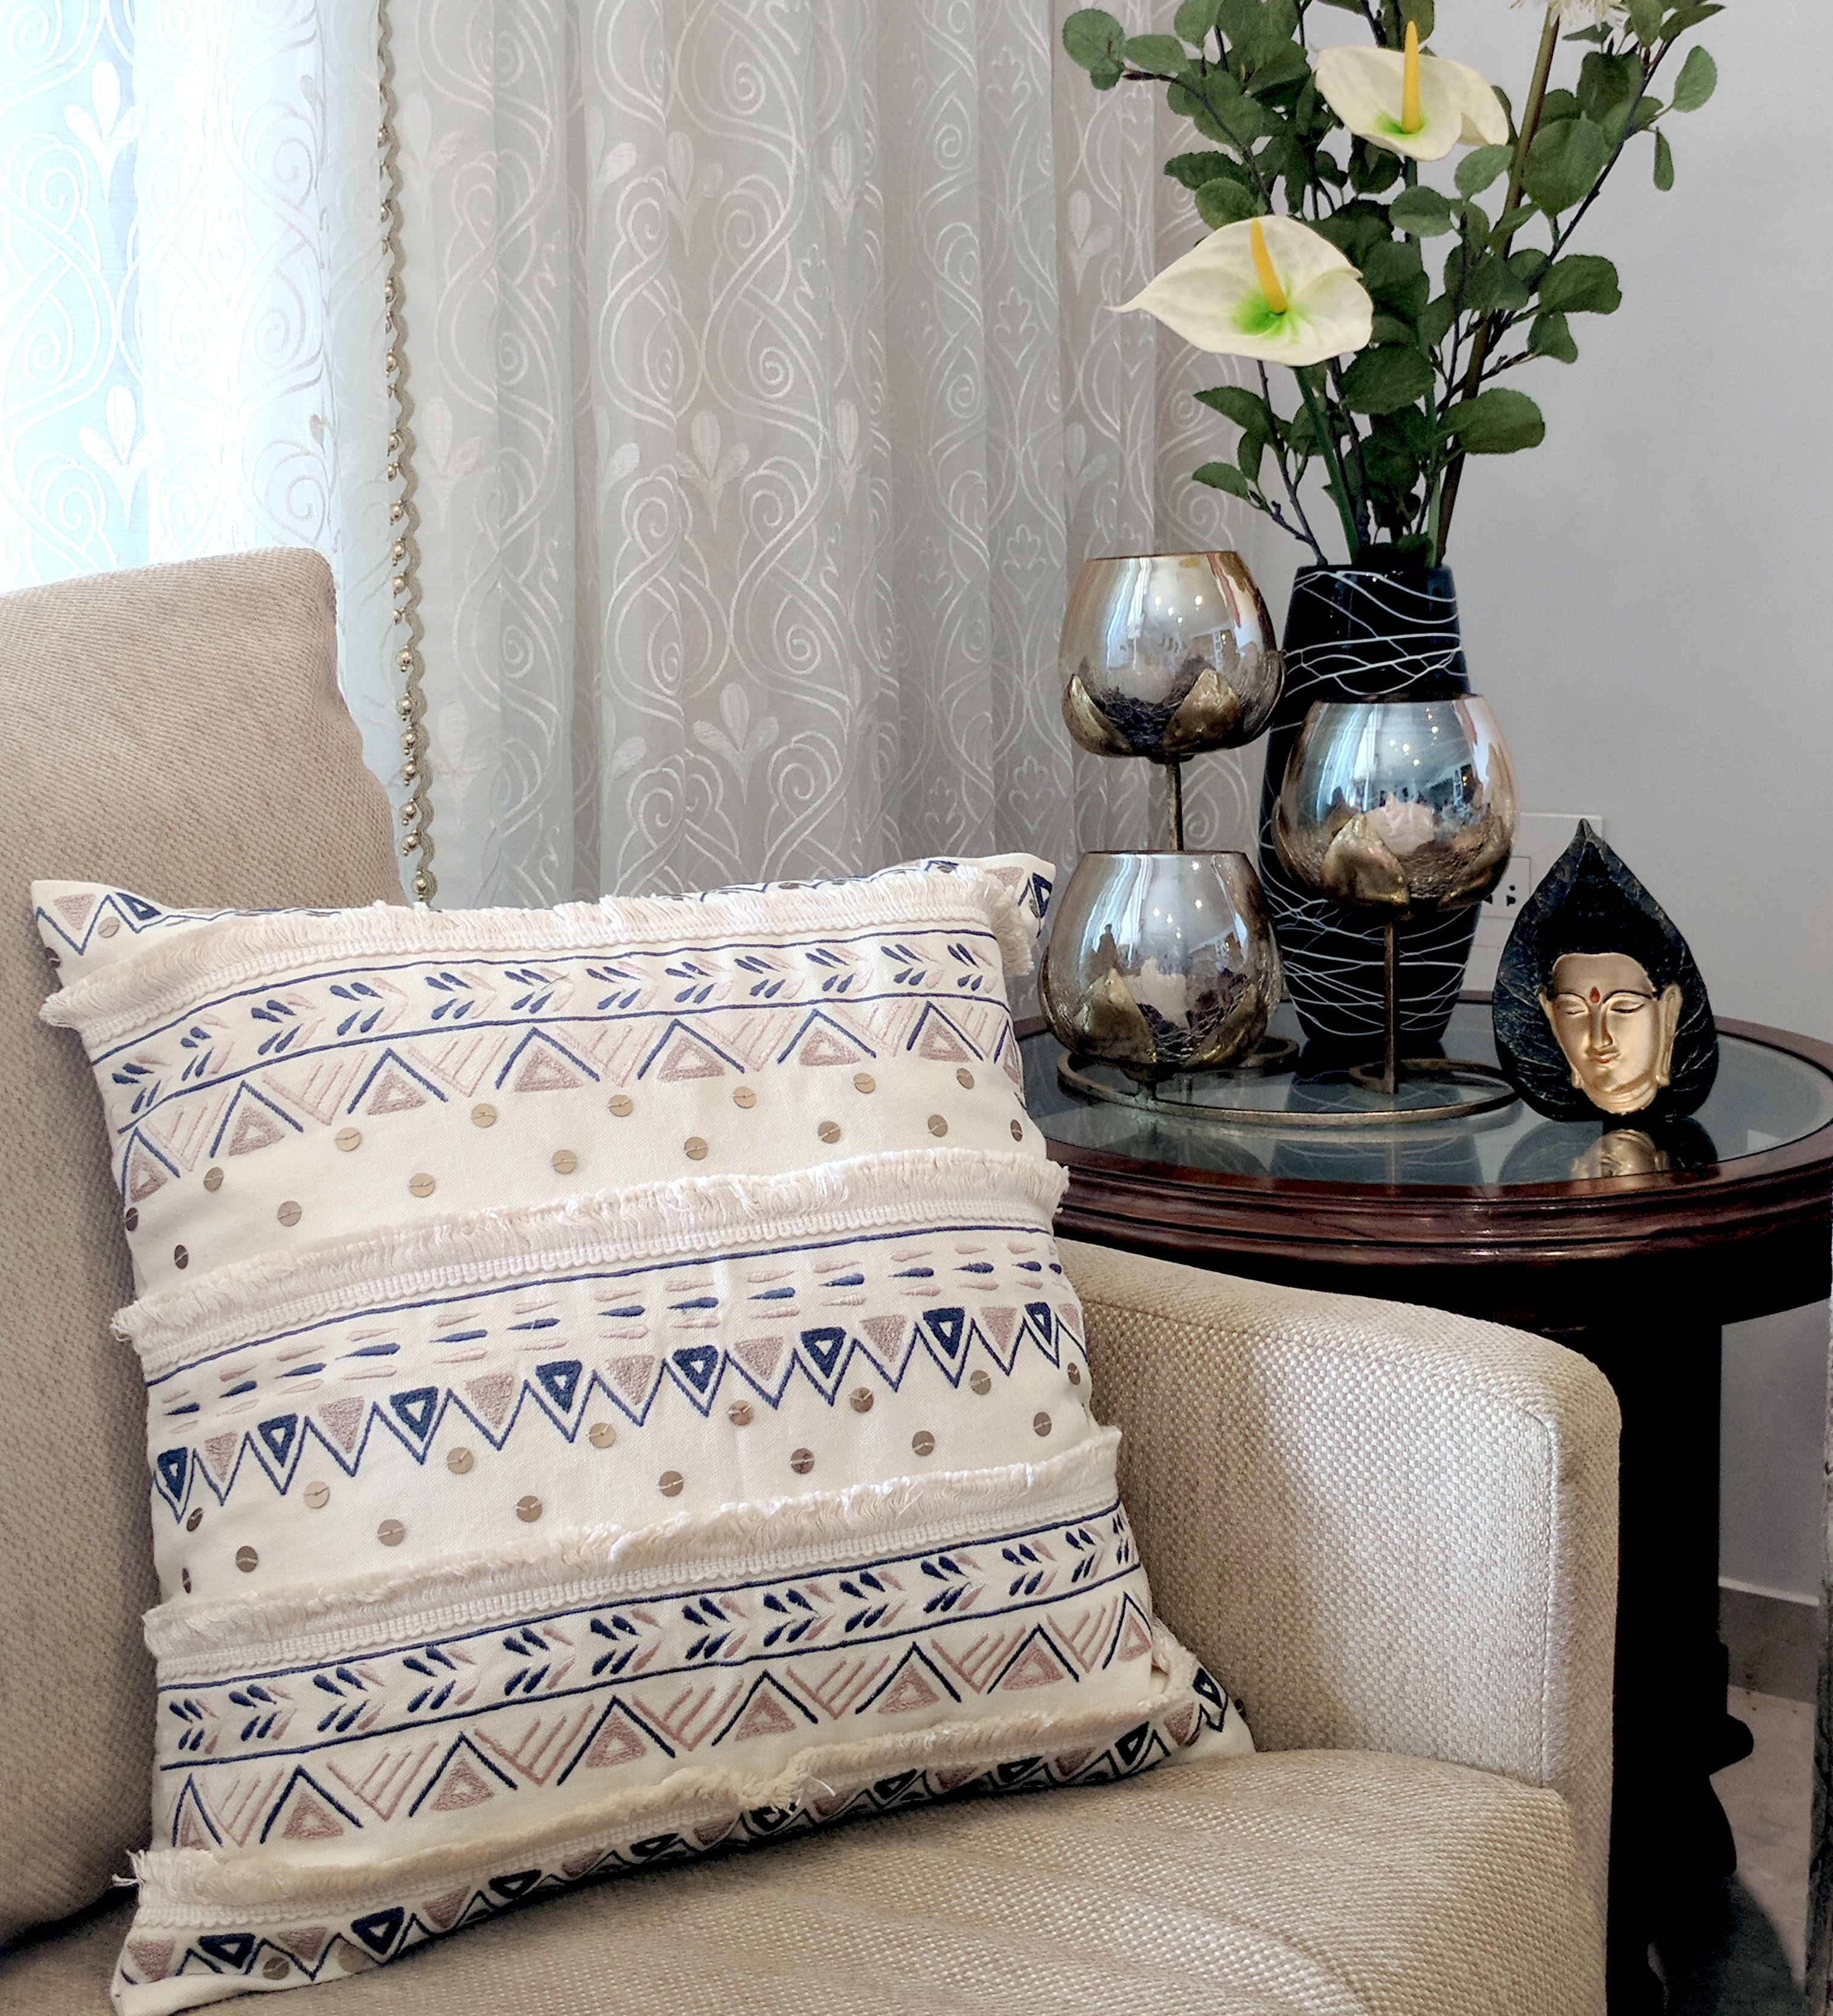 Festival Special Sofa Styling With Cushions By Vliving